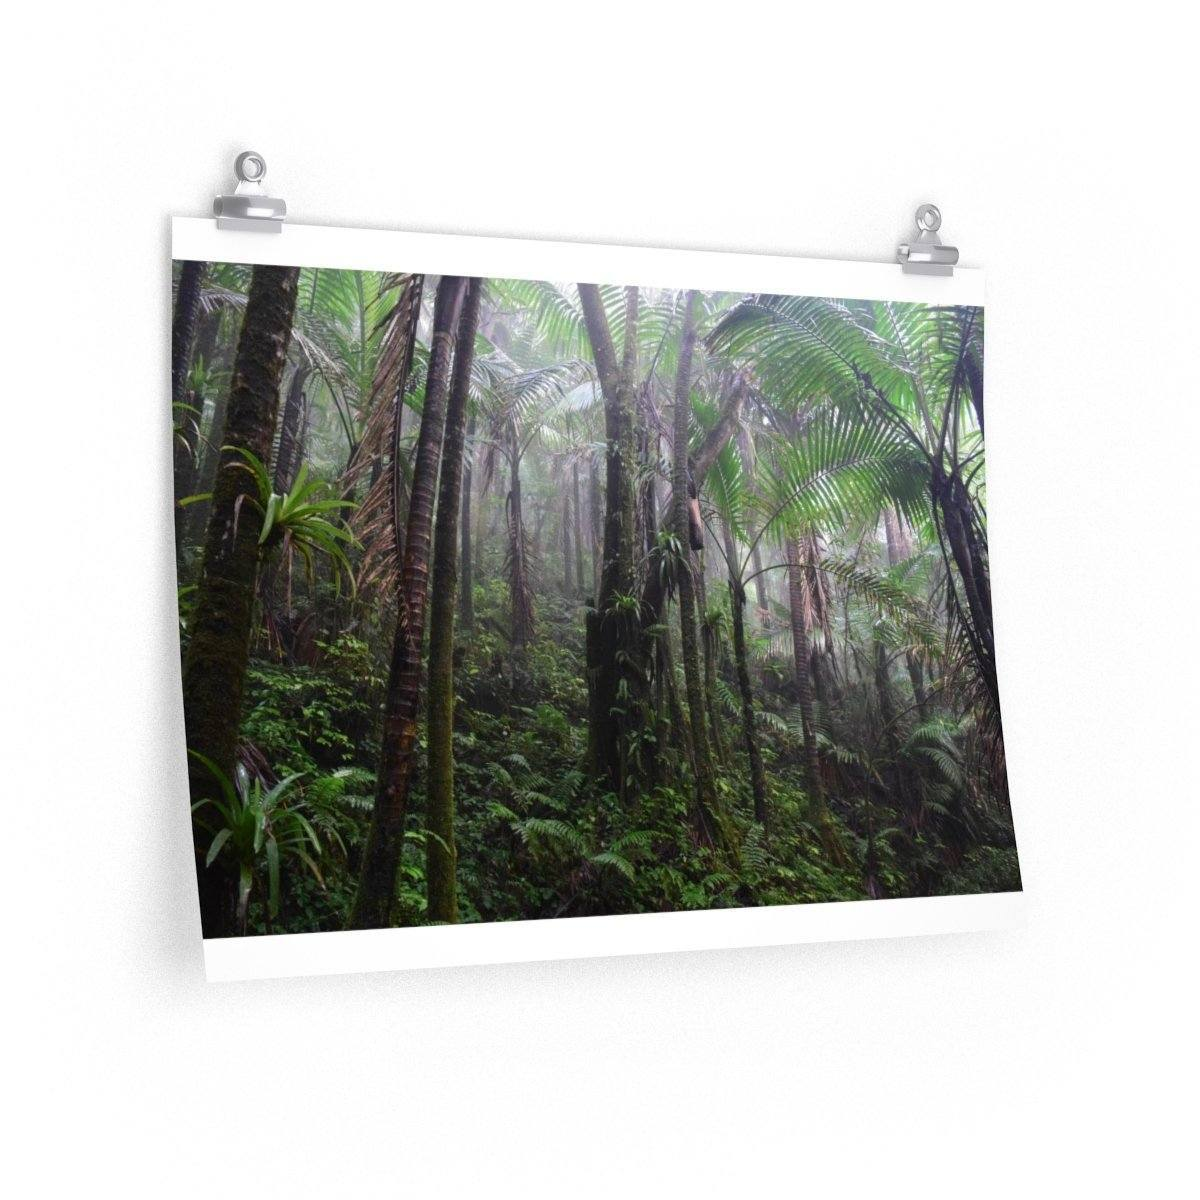 EYNF - Premium Matte horizontal posters - The cloud forest Poster Printify